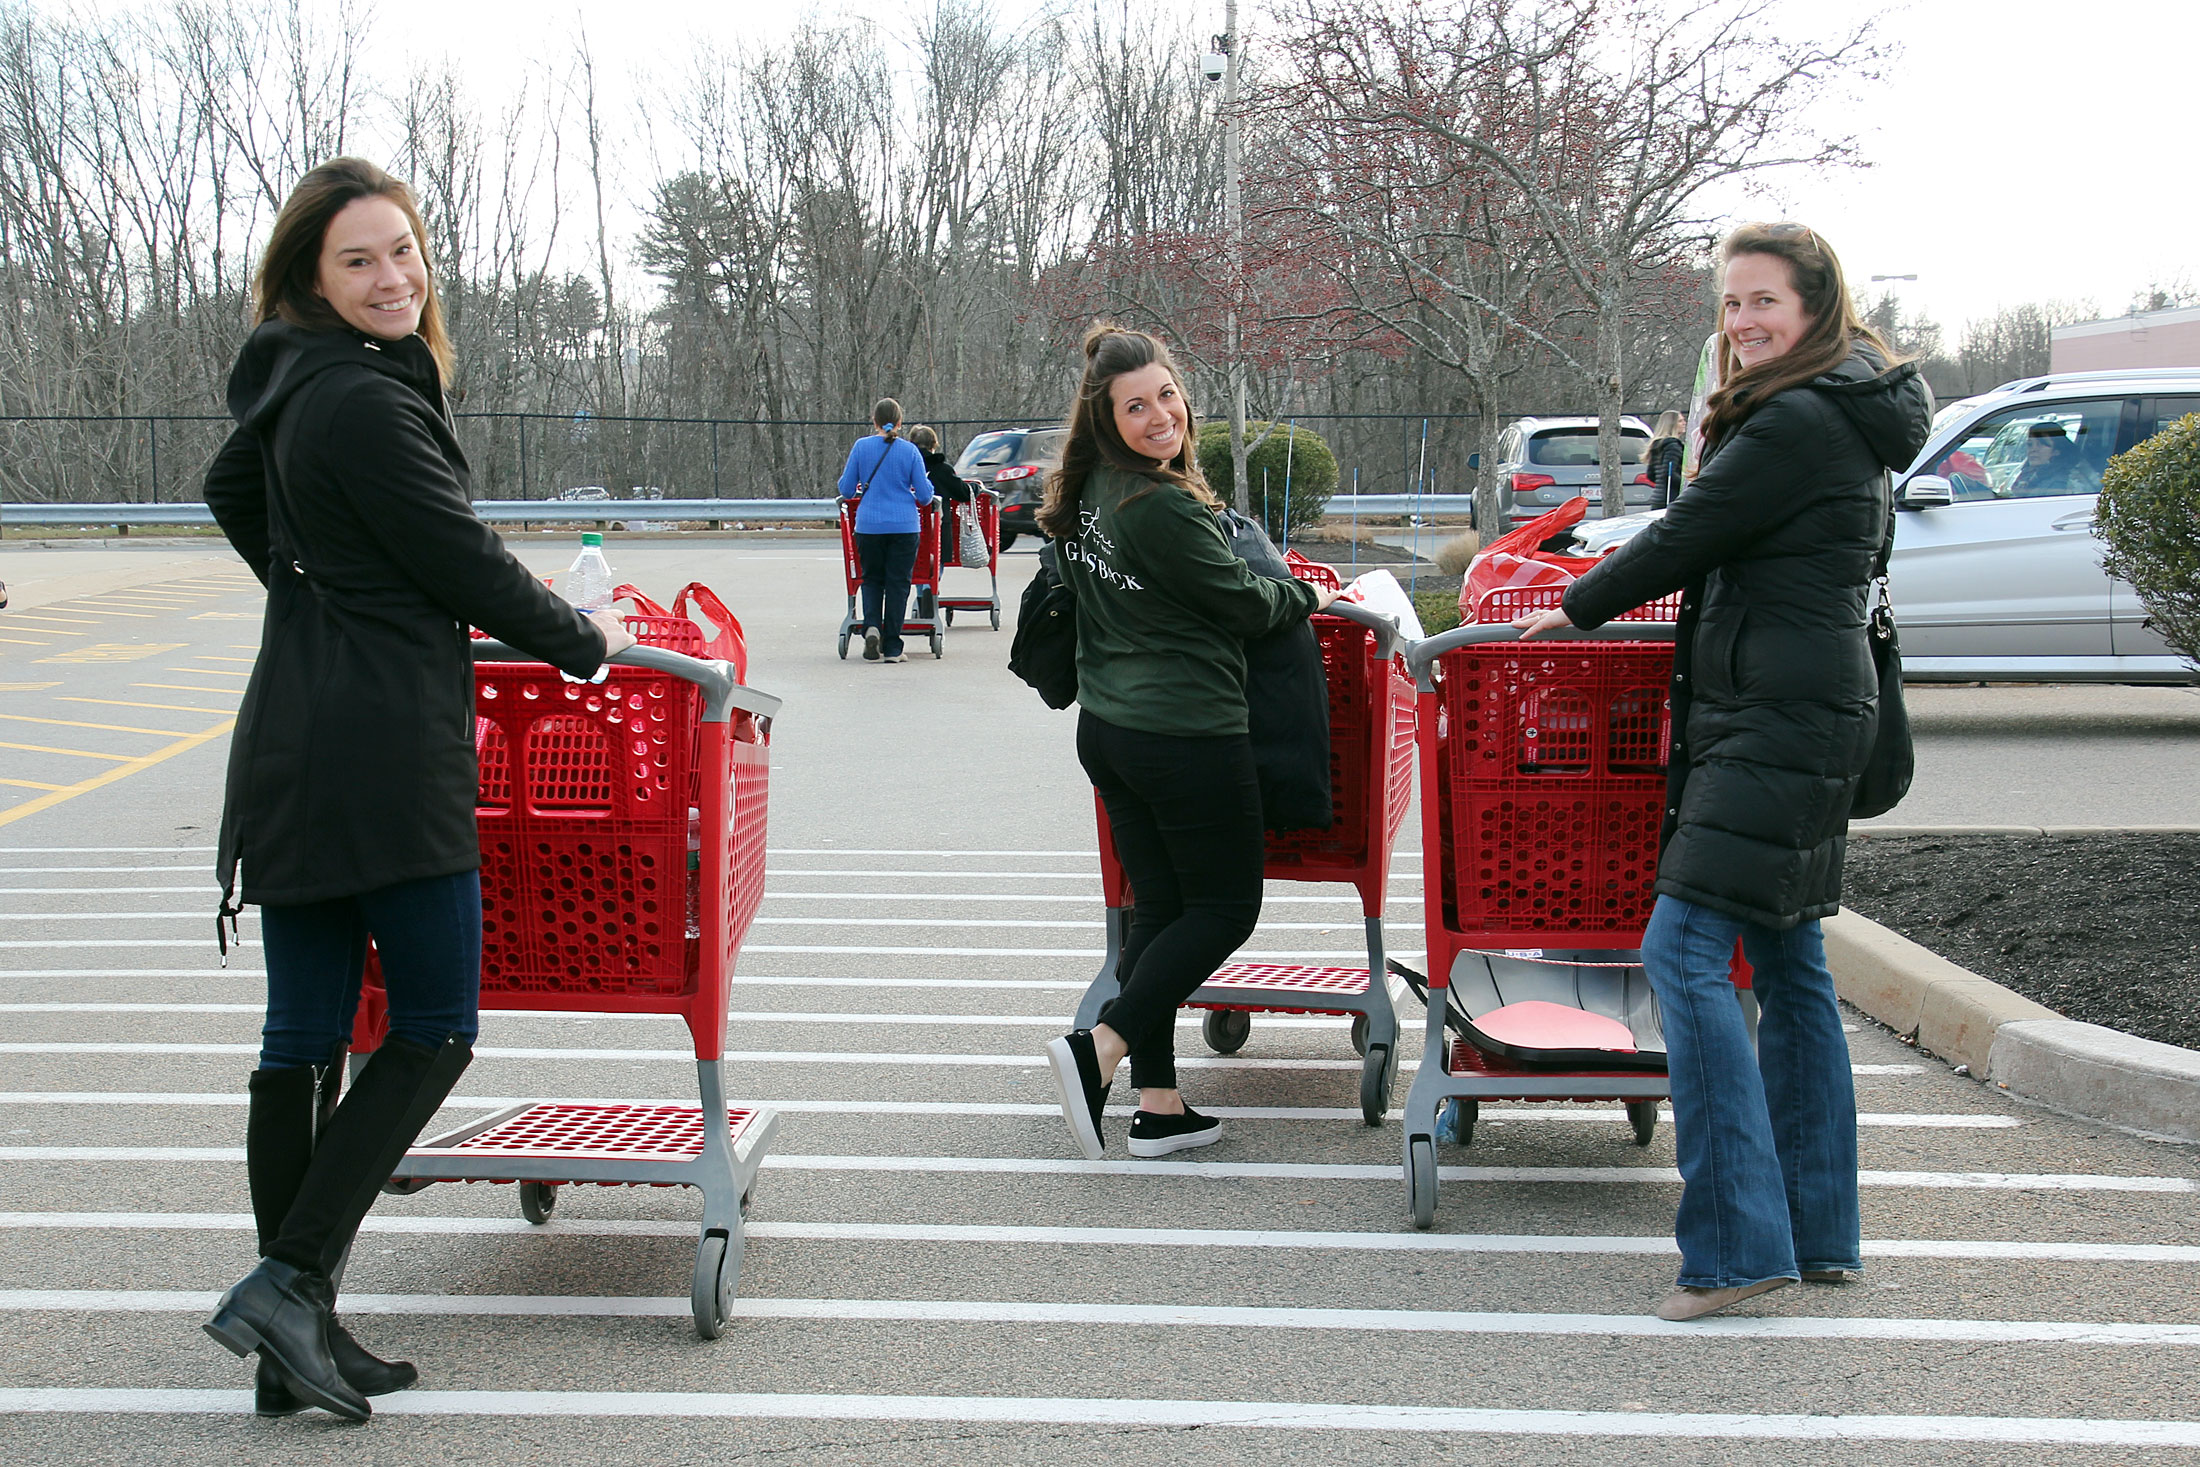 SEG staff in the parking lot at Target after shopping for holiday gifts